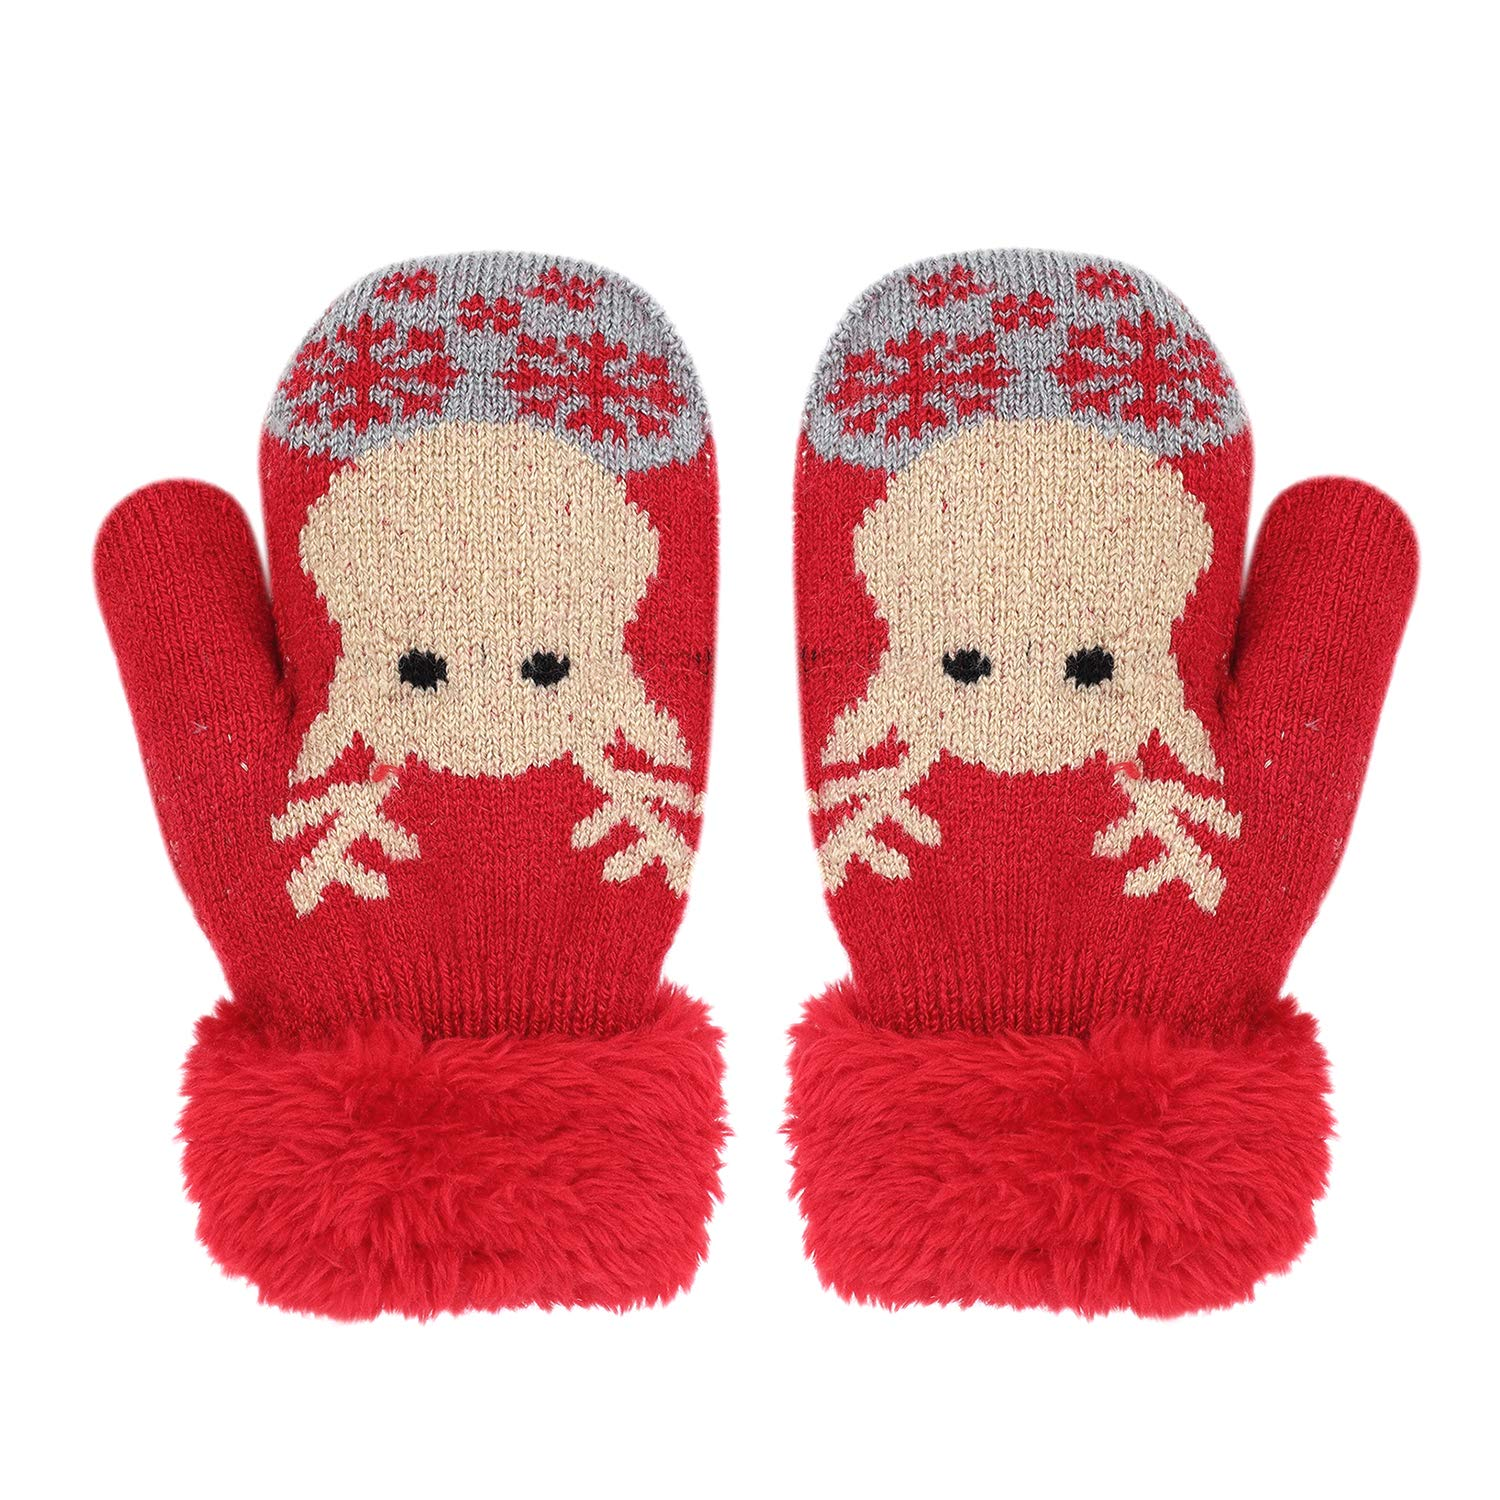 1-5T/3-14T/over 10T Unisex Toddlers Kids Youths Gloves Mittens Warm Thick Mitts Hand Warmer Hand Gloves Cold Weather Gloves